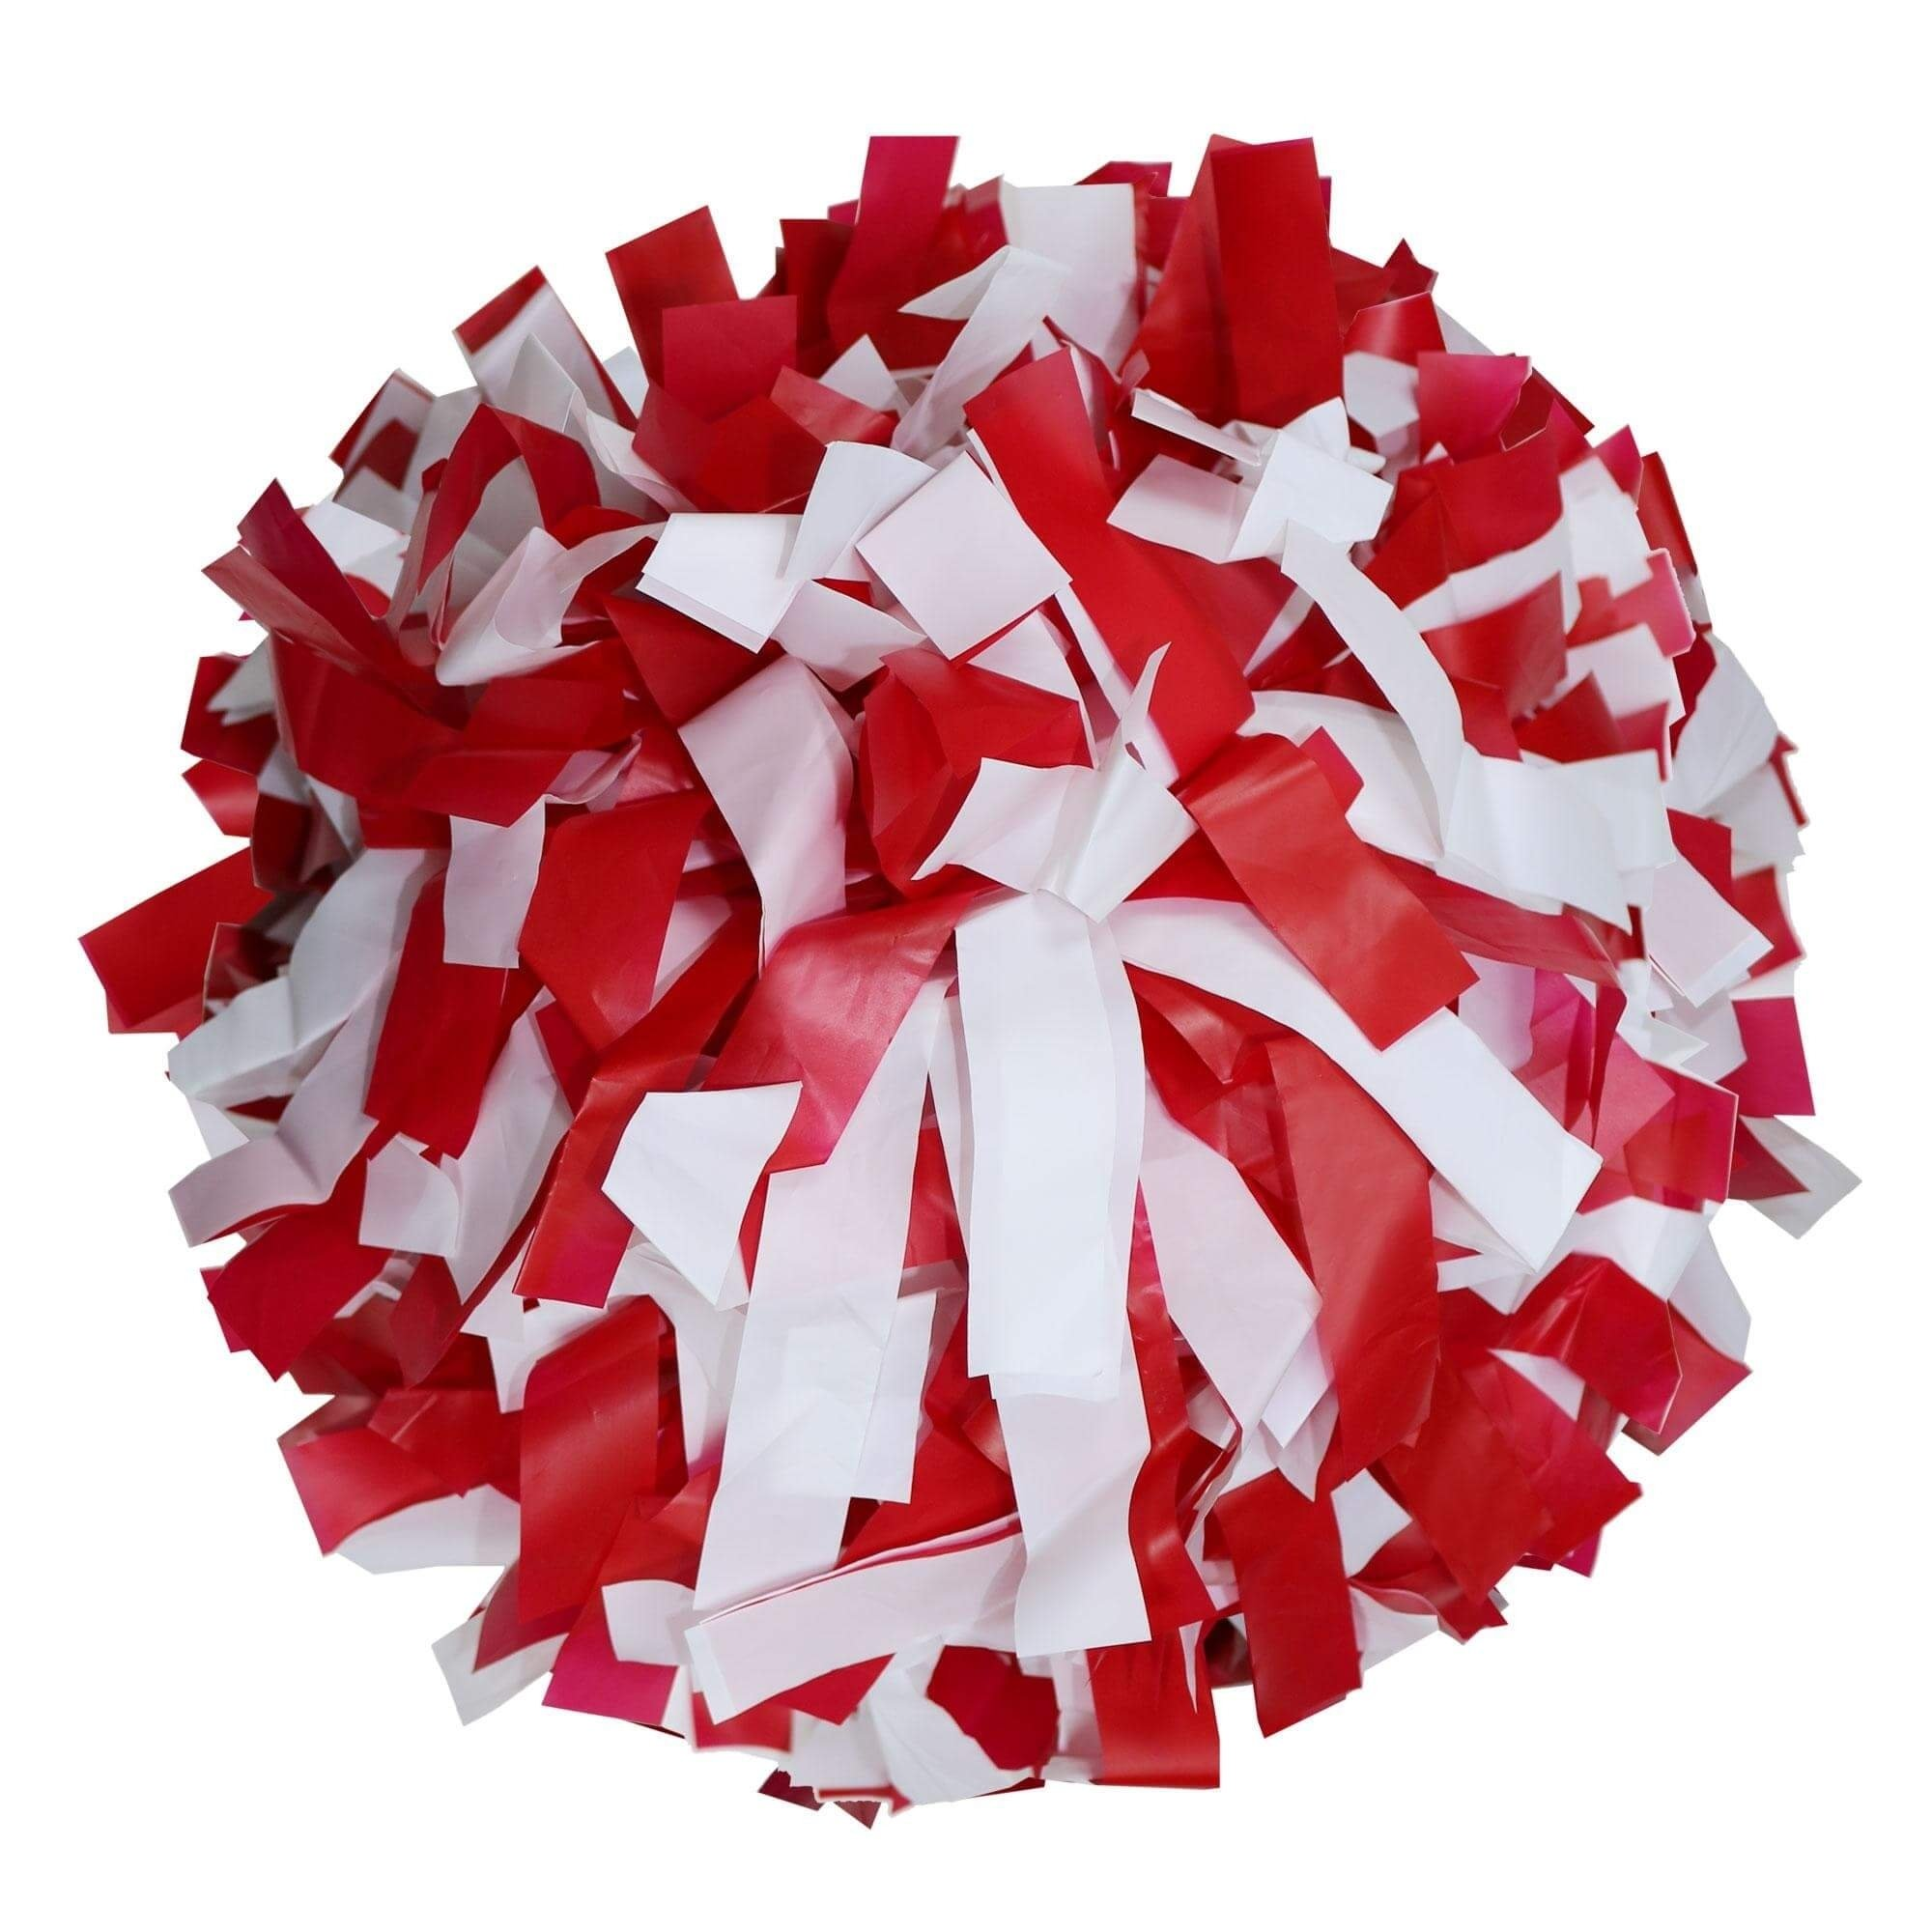 Danzcue Red/White Plastic Poms - One Pair